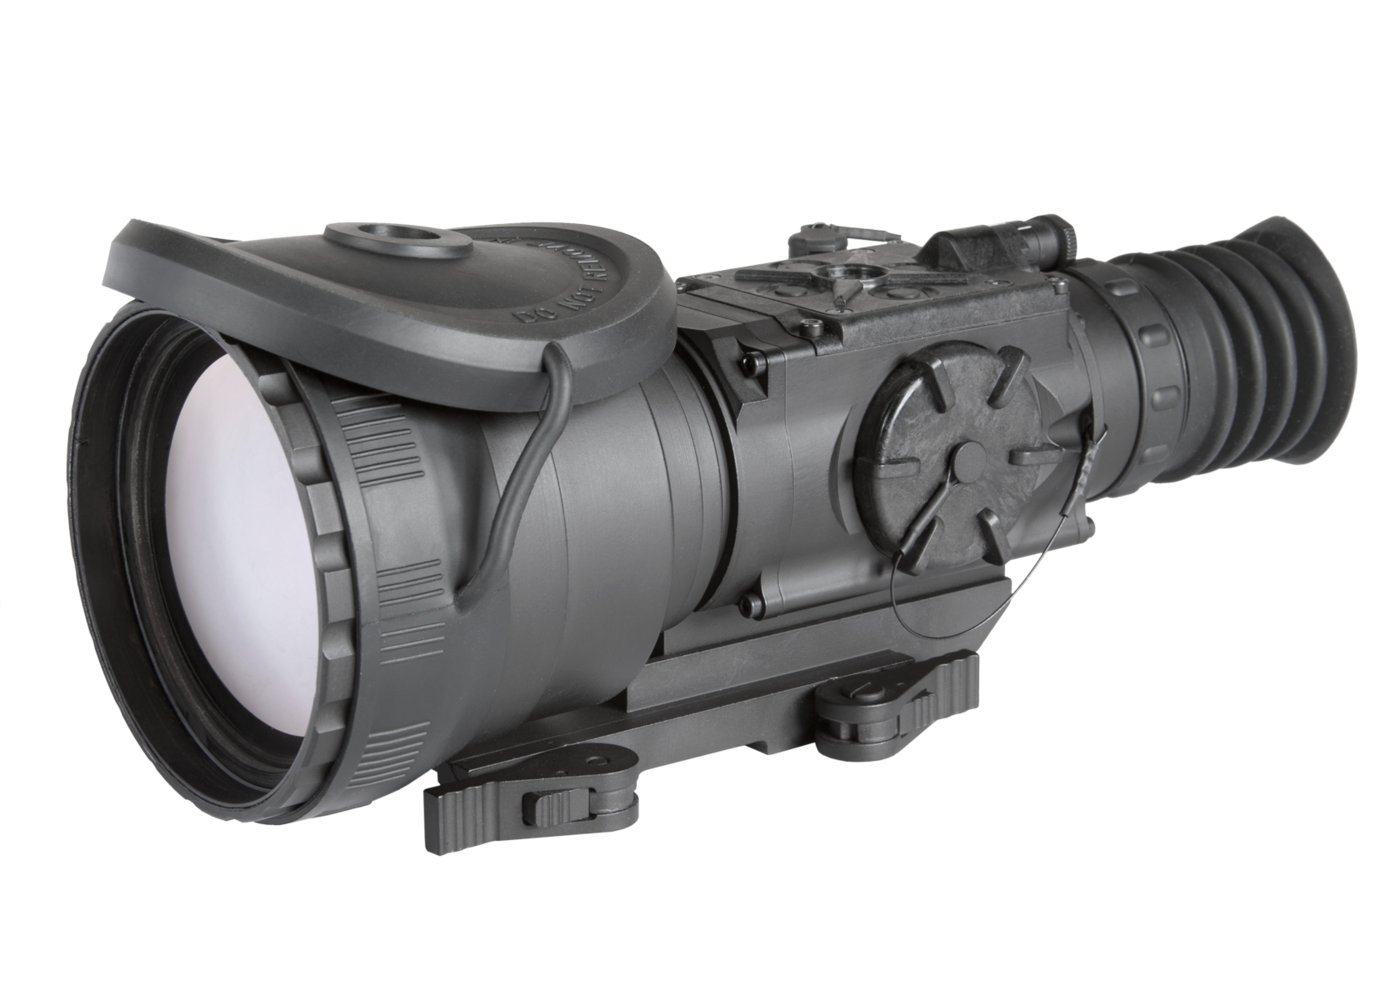 Armasight by FLIR Zeus 640 3-24x75mm Thermal Imaging Rifle Scope with Tau 2 640x512 17 micron 60Hz Core by Armasight